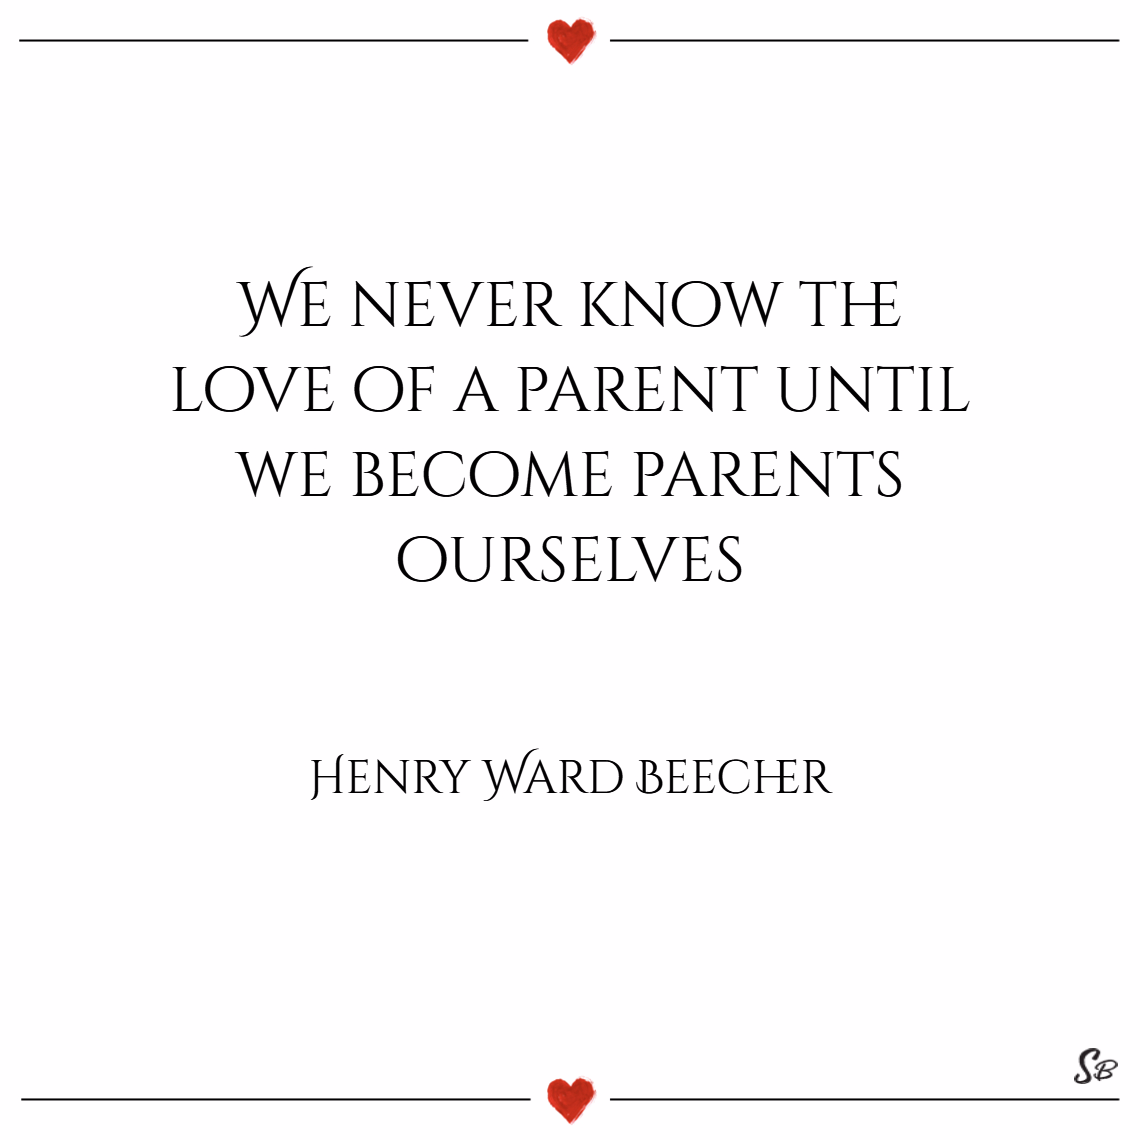 We never know the love of a parent until we become